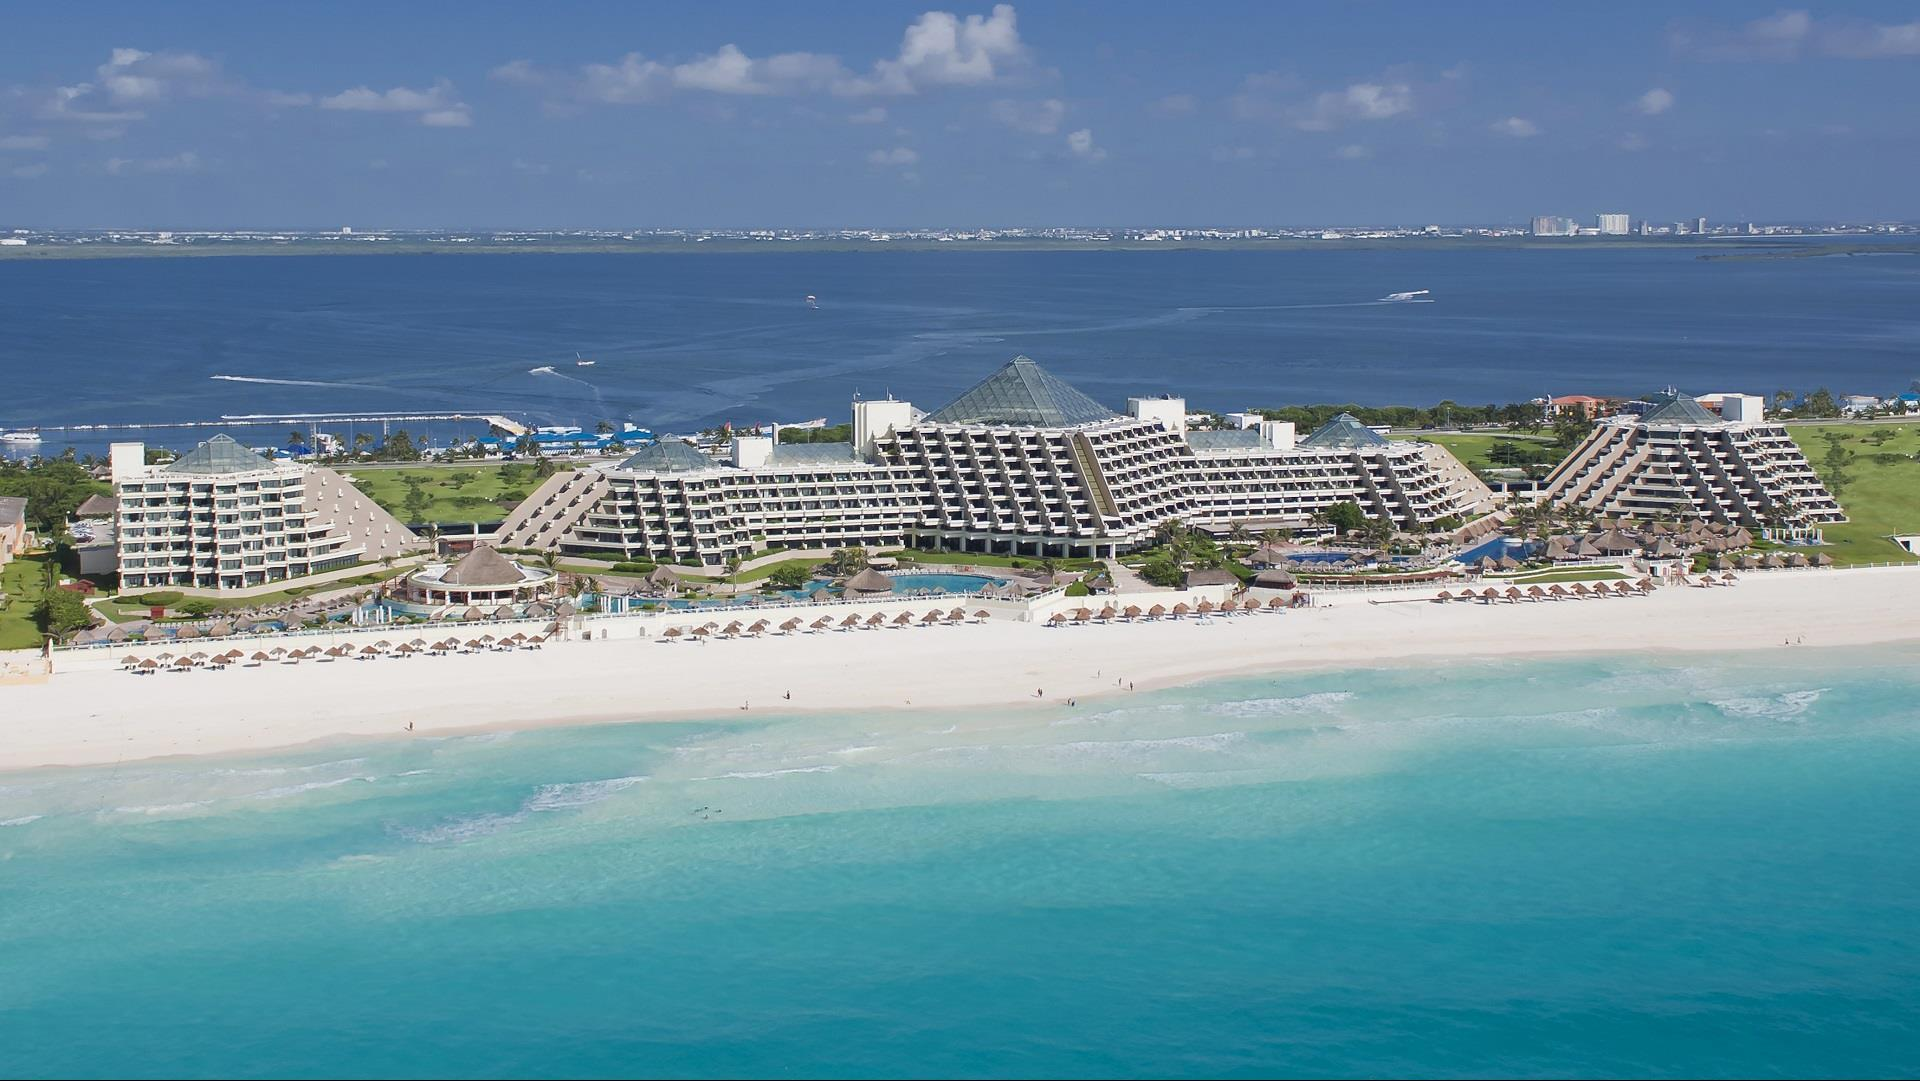 Meetings And Events At Paradisus Cancun Cancun Mx